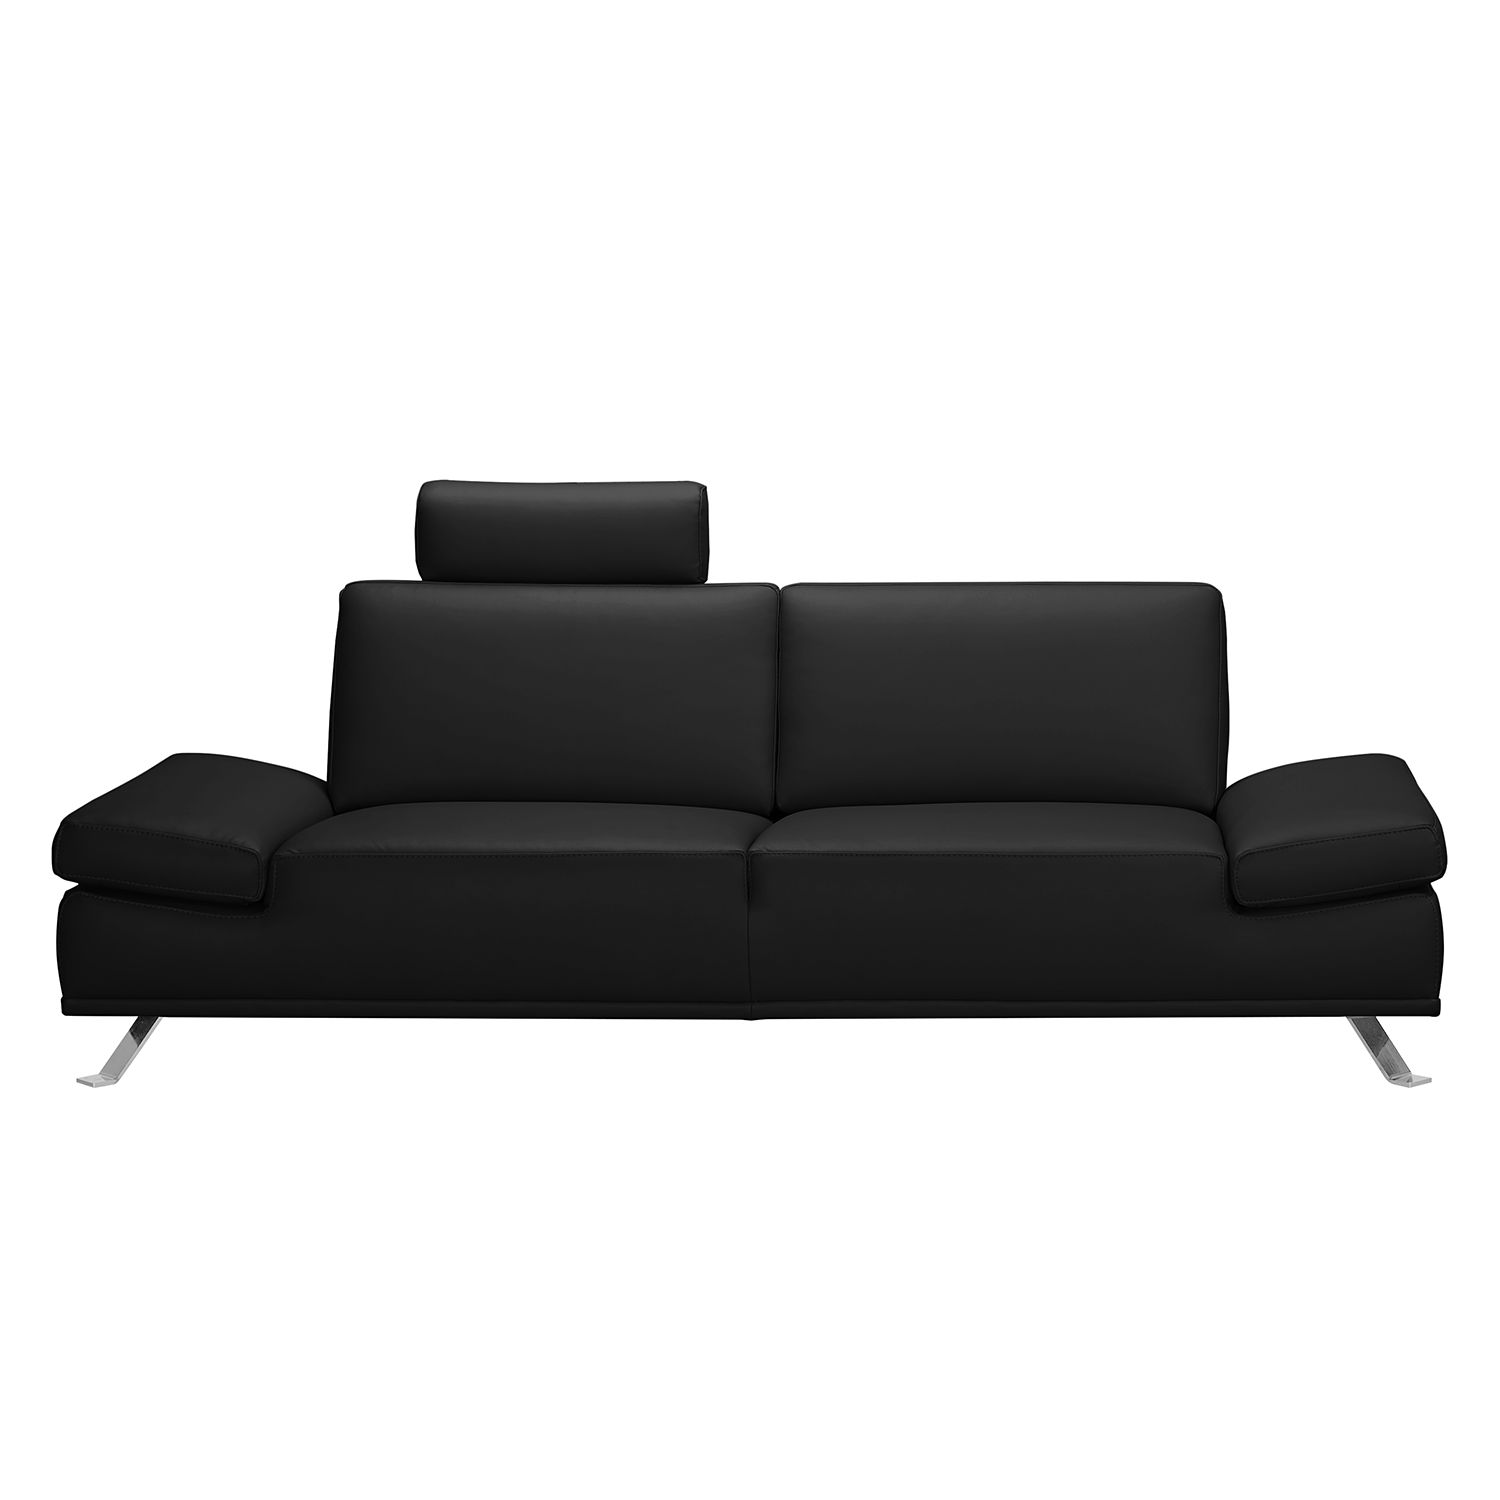 sofa toone 3 sitzer kunstleder schwarz loftscape online kaufen bei woonio. Black Bedroom Furniture Sets. Home Design Ideas